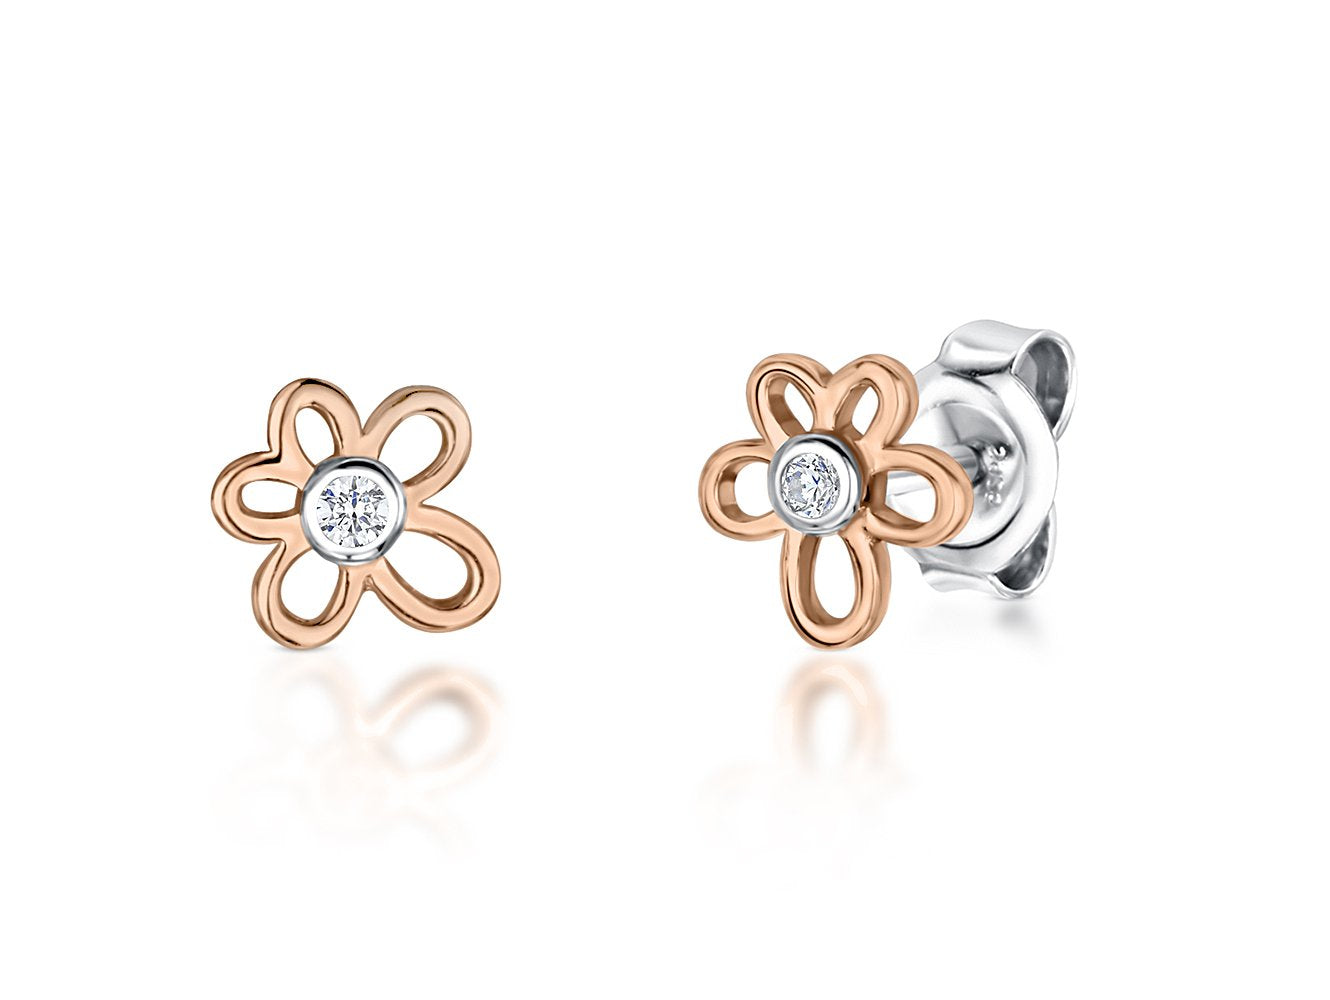 Sterling Silver And Rose Gold  Flower Earrings - JOOLS By Jenny Brown